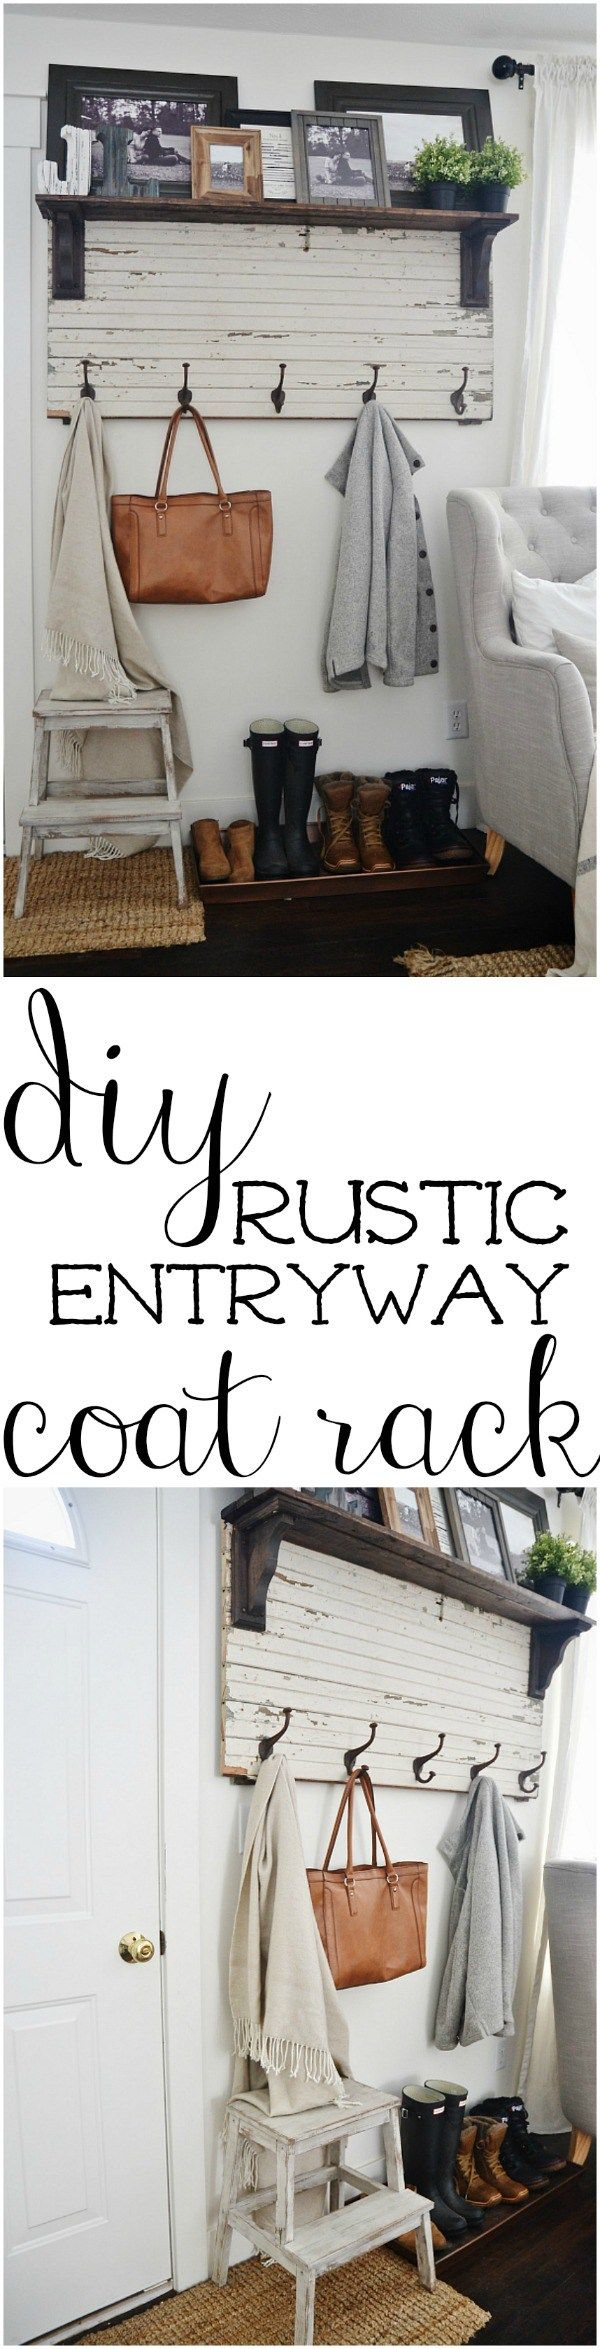 Foyer Room Quotes : Best entryway hooks ideas on pinterest entry coat